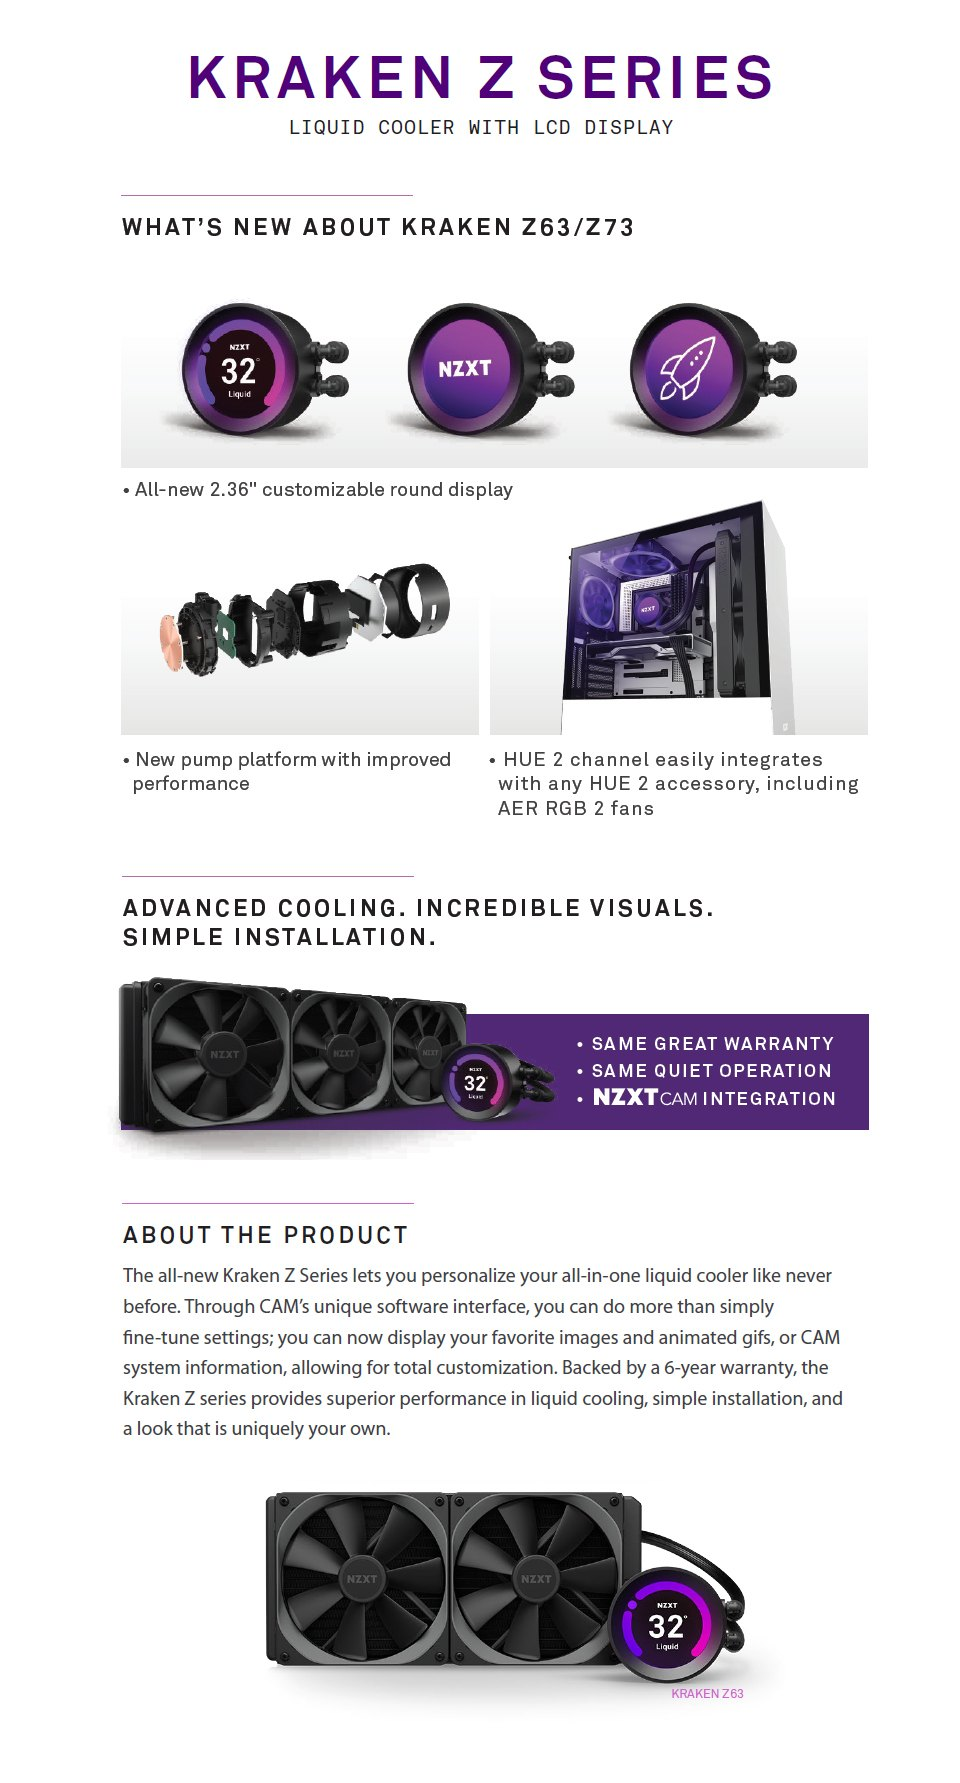 NZXT Kraken Z63 280mm AIO Liquid CPU Cooler features